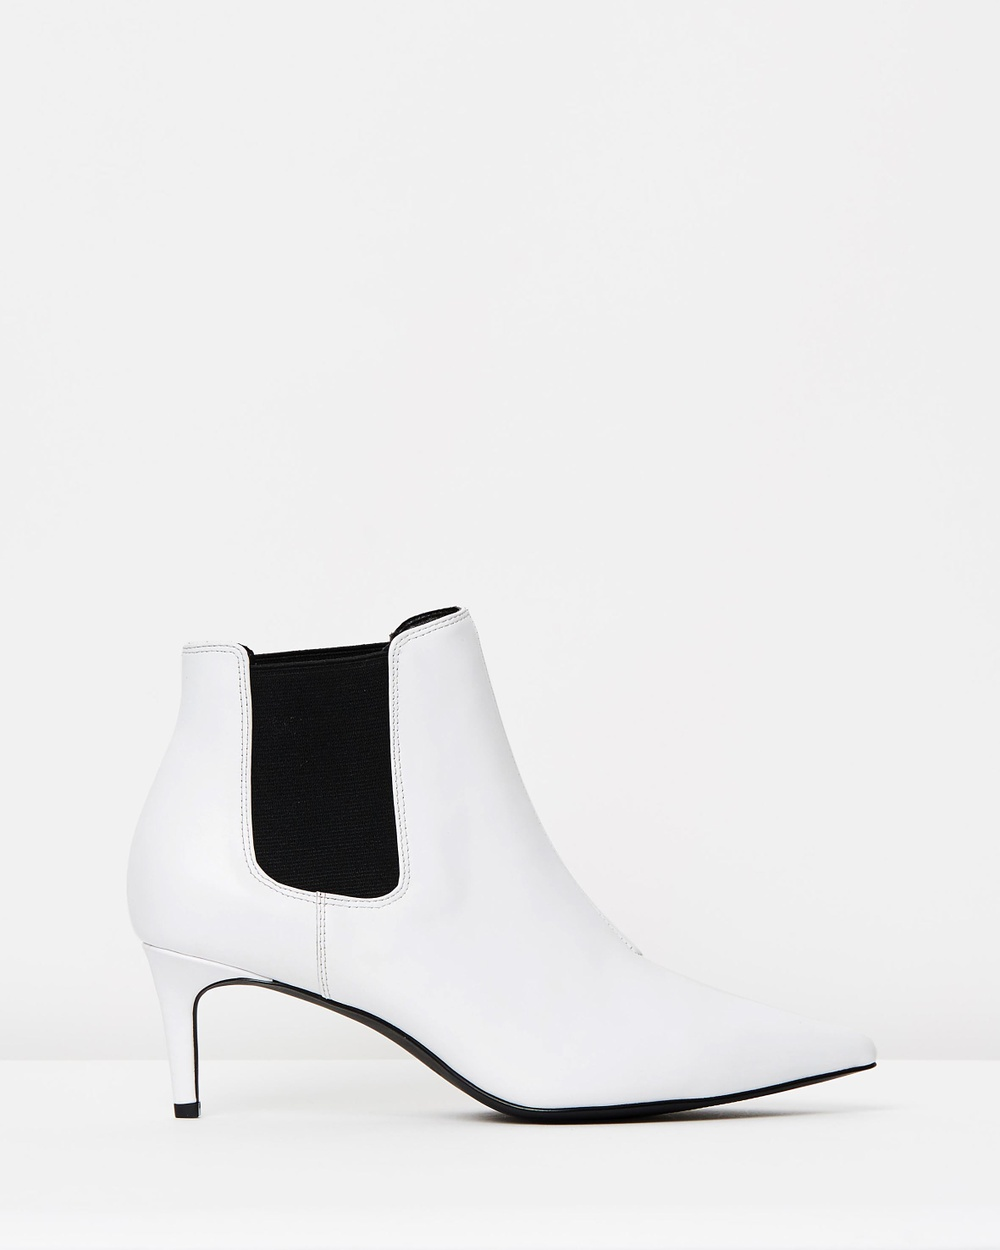 Atmos & Here ICONIC EXCLUSIVE Octavia Leather Ankle Boots Mid-low heels White Leather ICONIC EXCLUSIVE Octavia Leather Ankle Boots